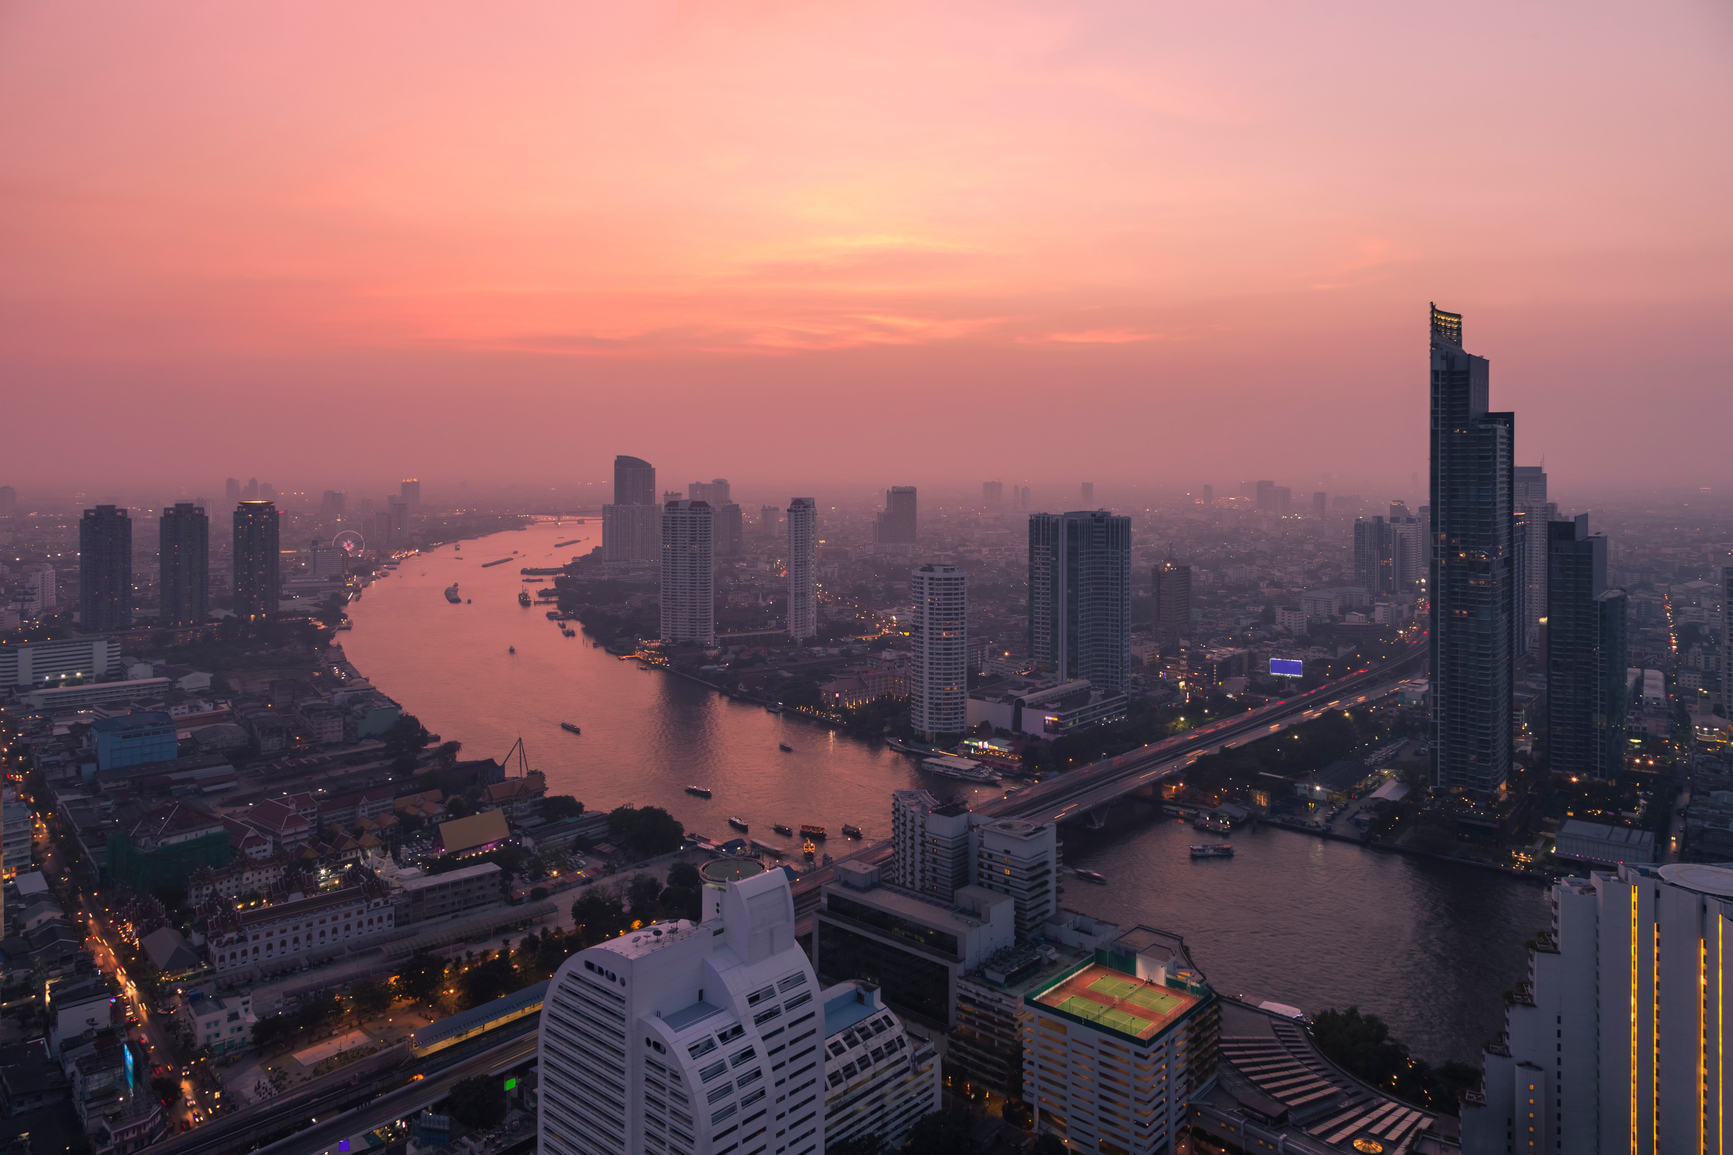 Evening Panorama Of Bangkok, Thailand With The Chao Phraya River